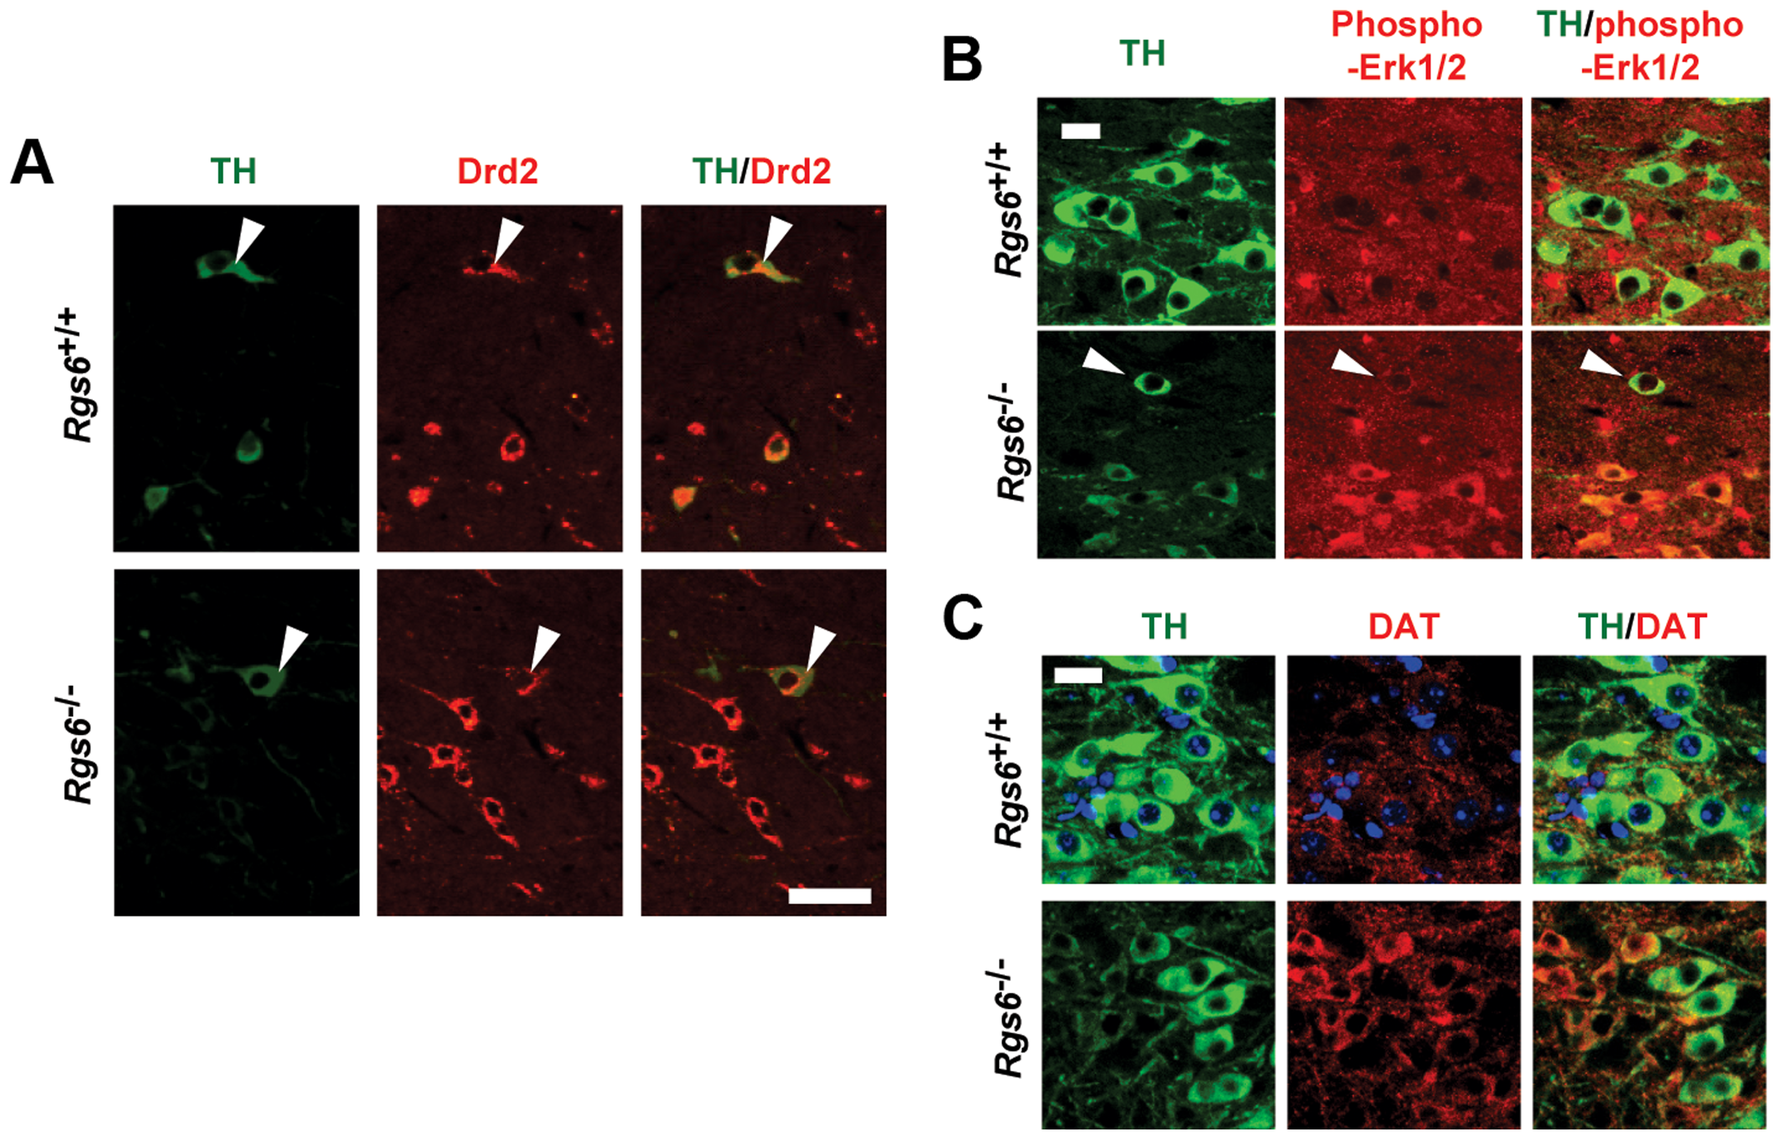 Drd2-related changes of gene expression in degenerating neurons of vSNc.